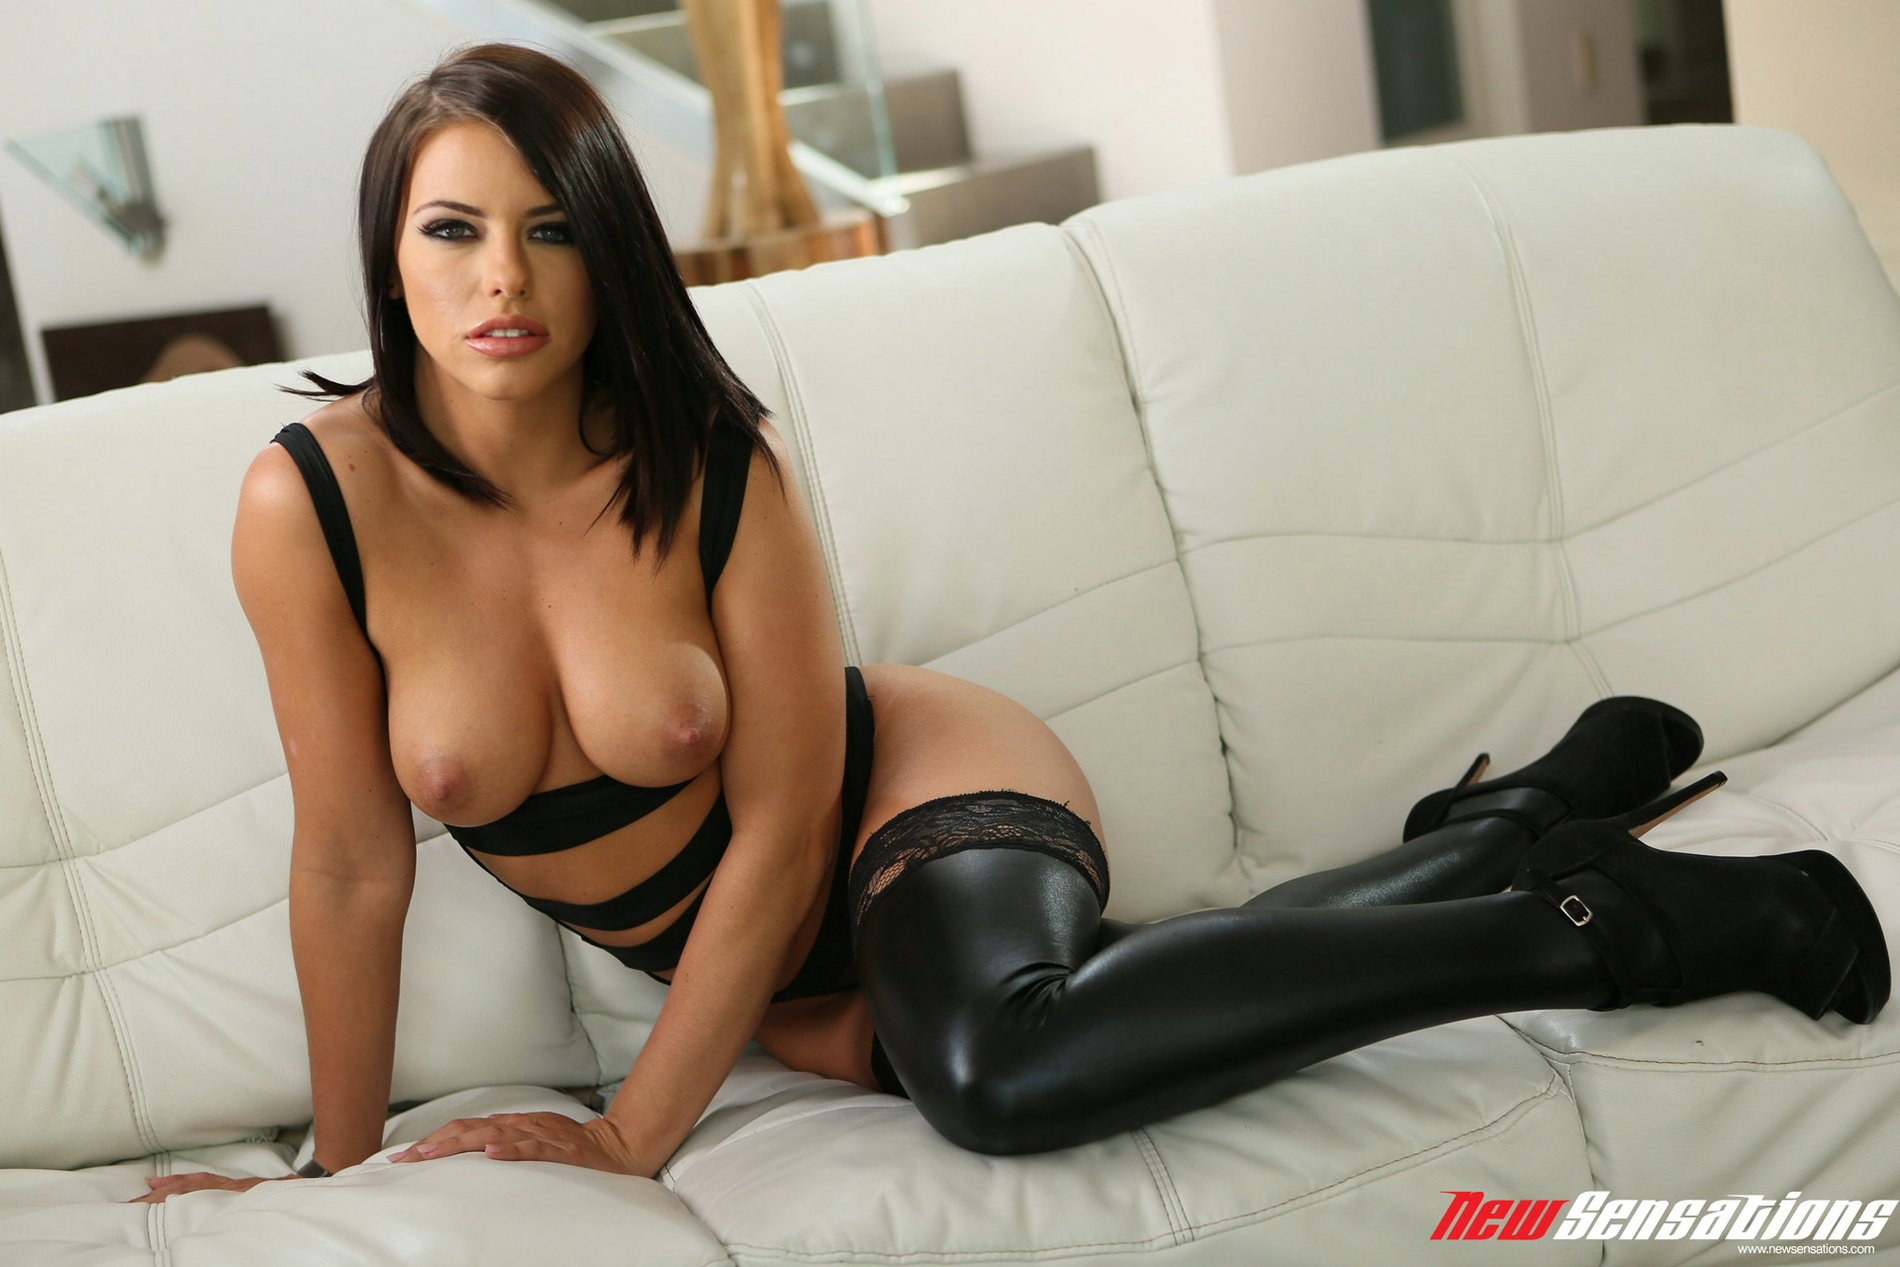 Leather Fetish Porn Stars - Adriana Chechik in black leather stockings and heels poses for camera.